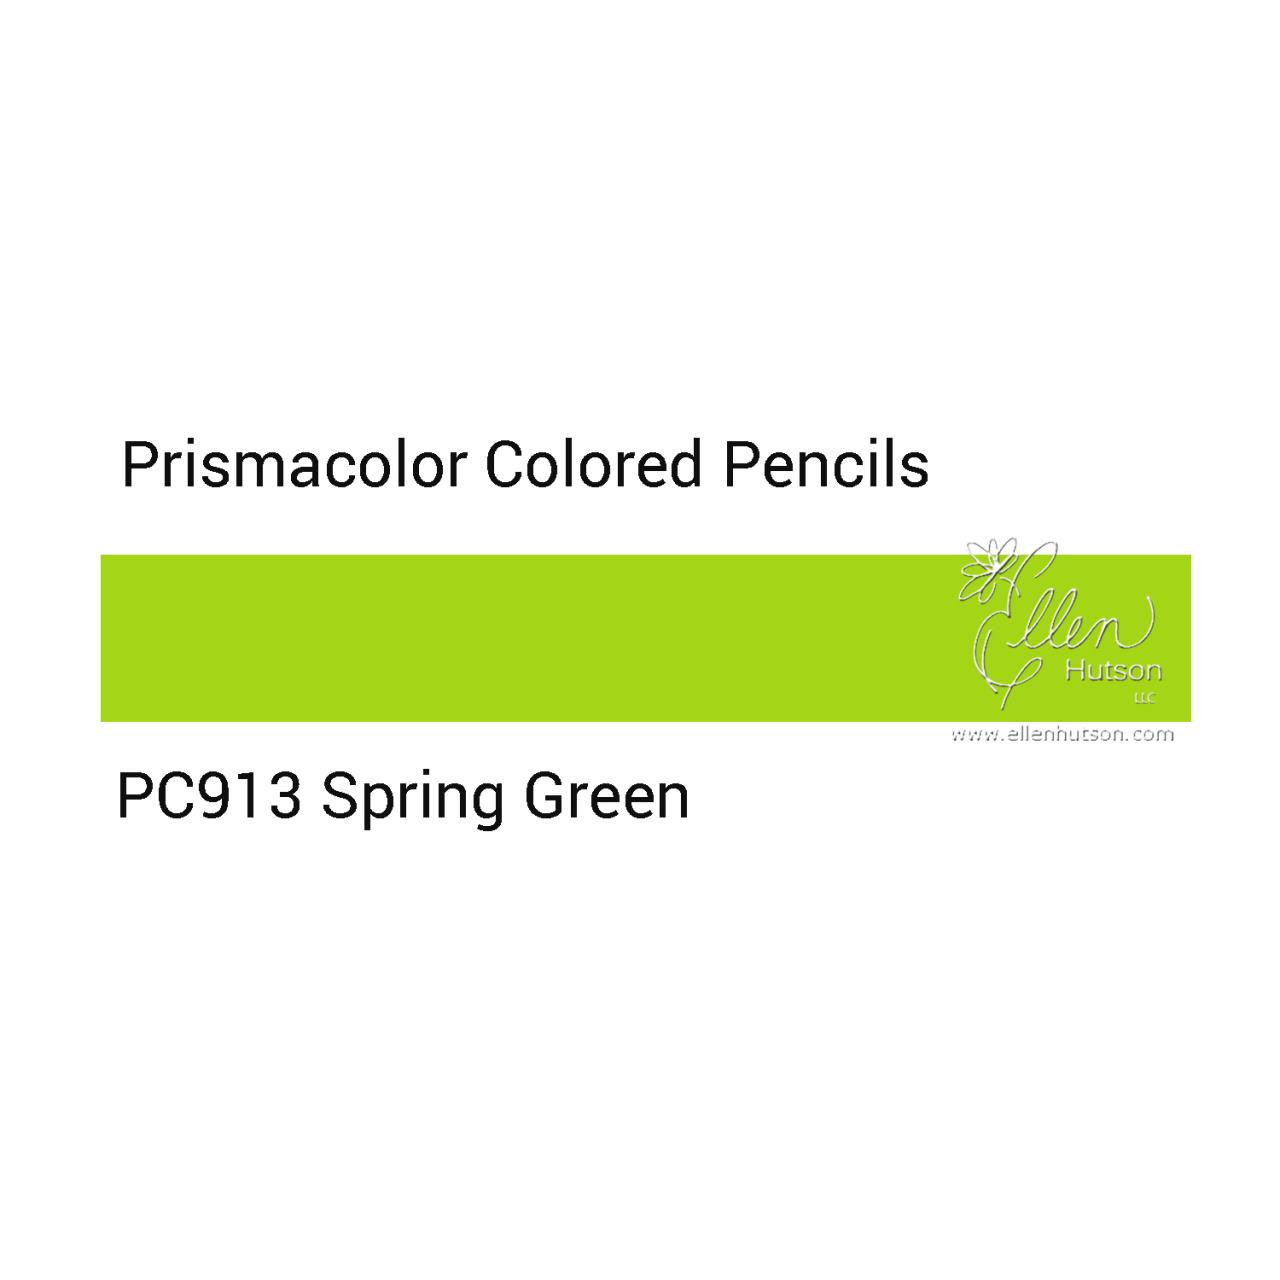 Prismacolor Premier Colored Pencils, Spring Green PC913 - 070735033444